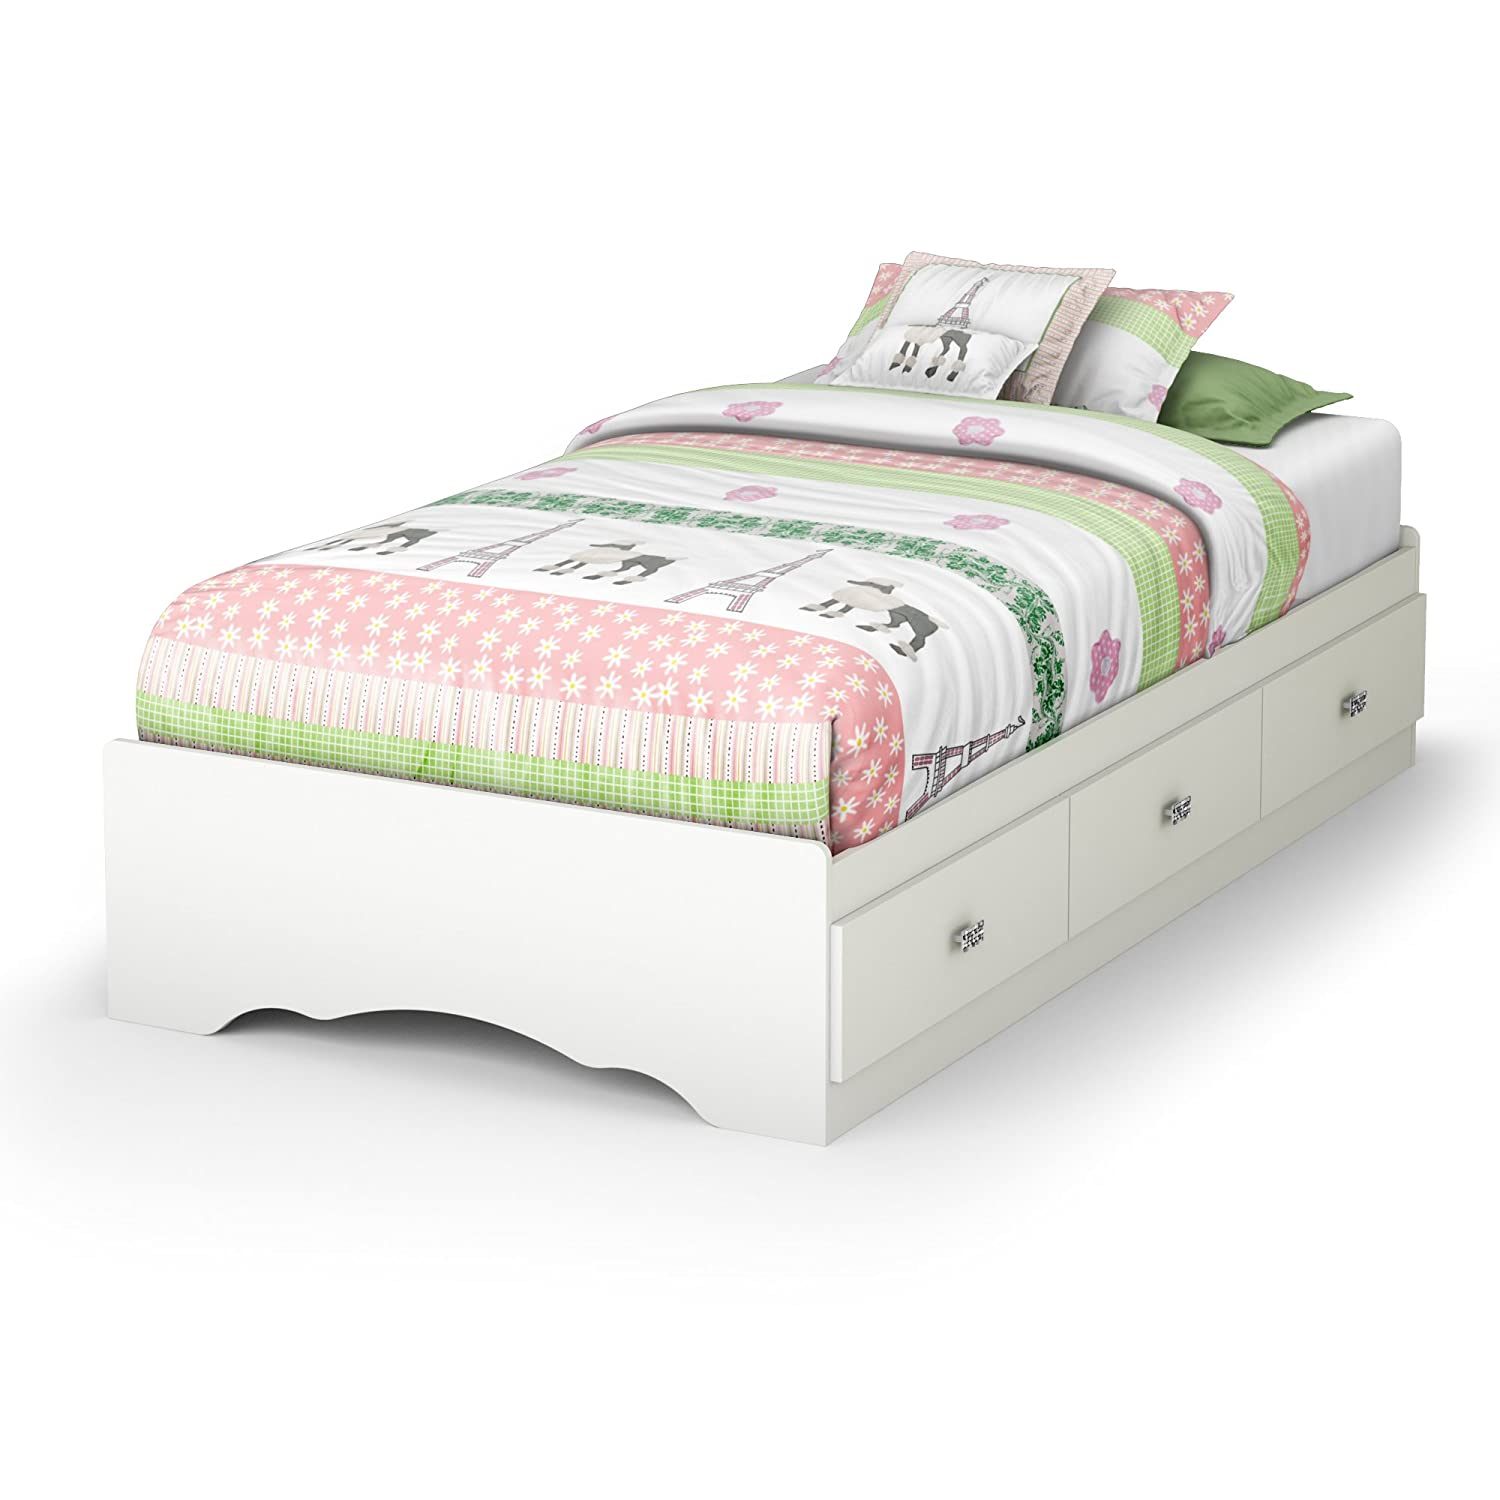 Amazon.com: Tiara Collection Twin Bed with Storage - Platform Bed ...